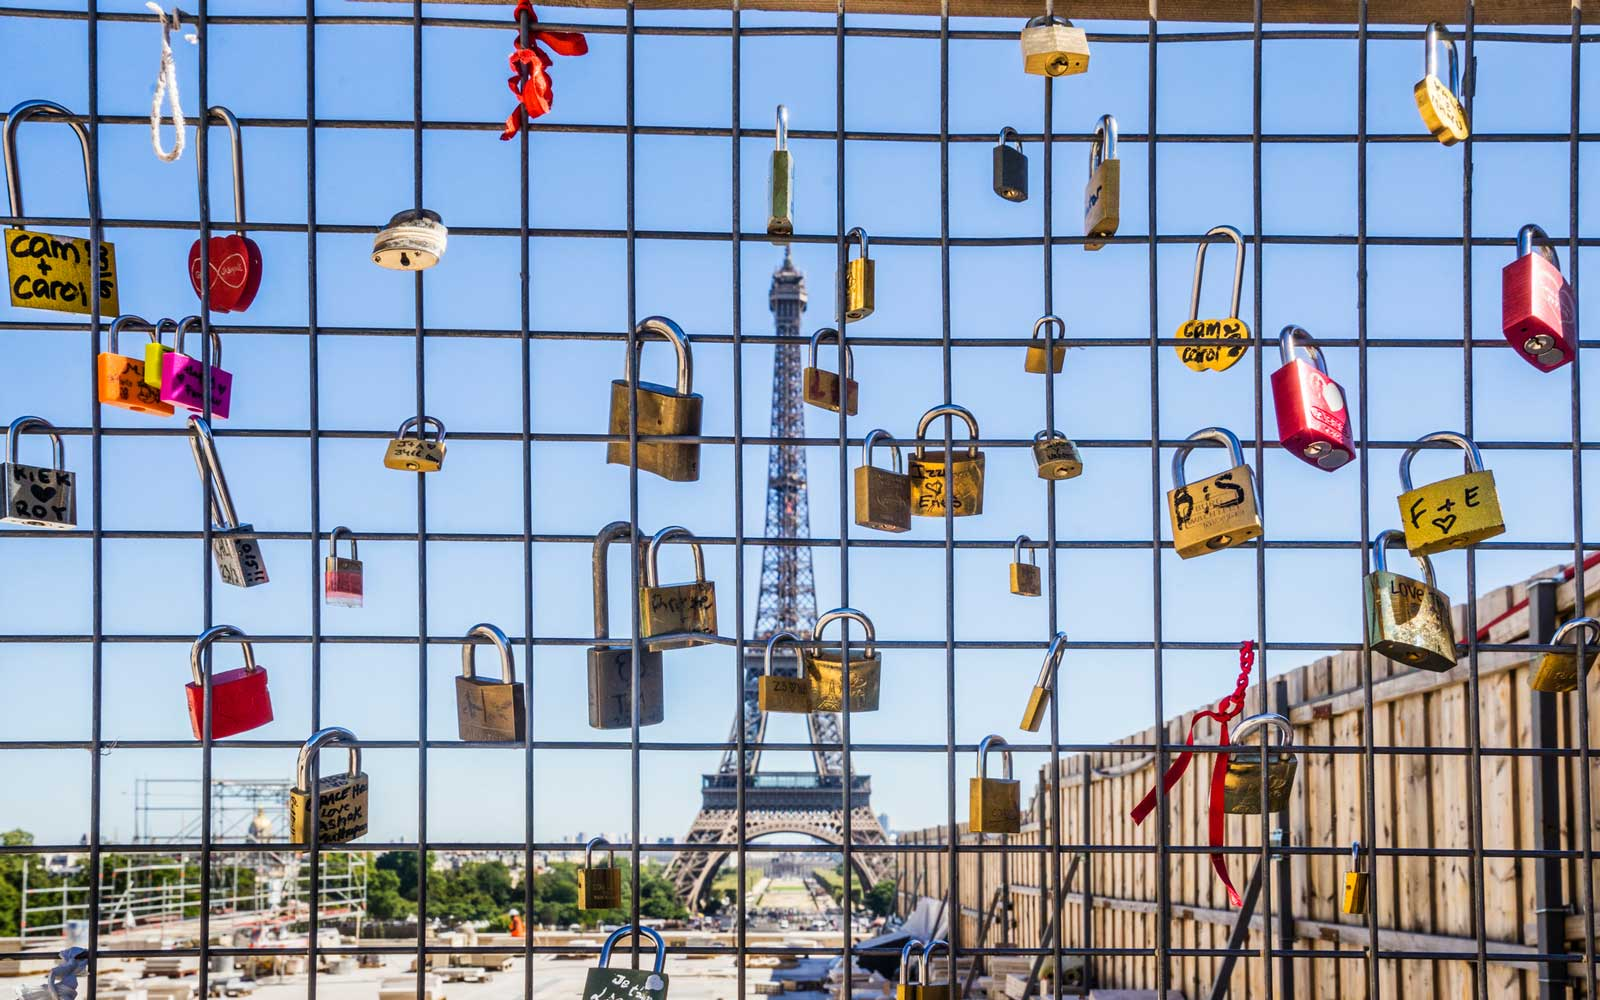 Here's how to own one of Paris' famous love locks